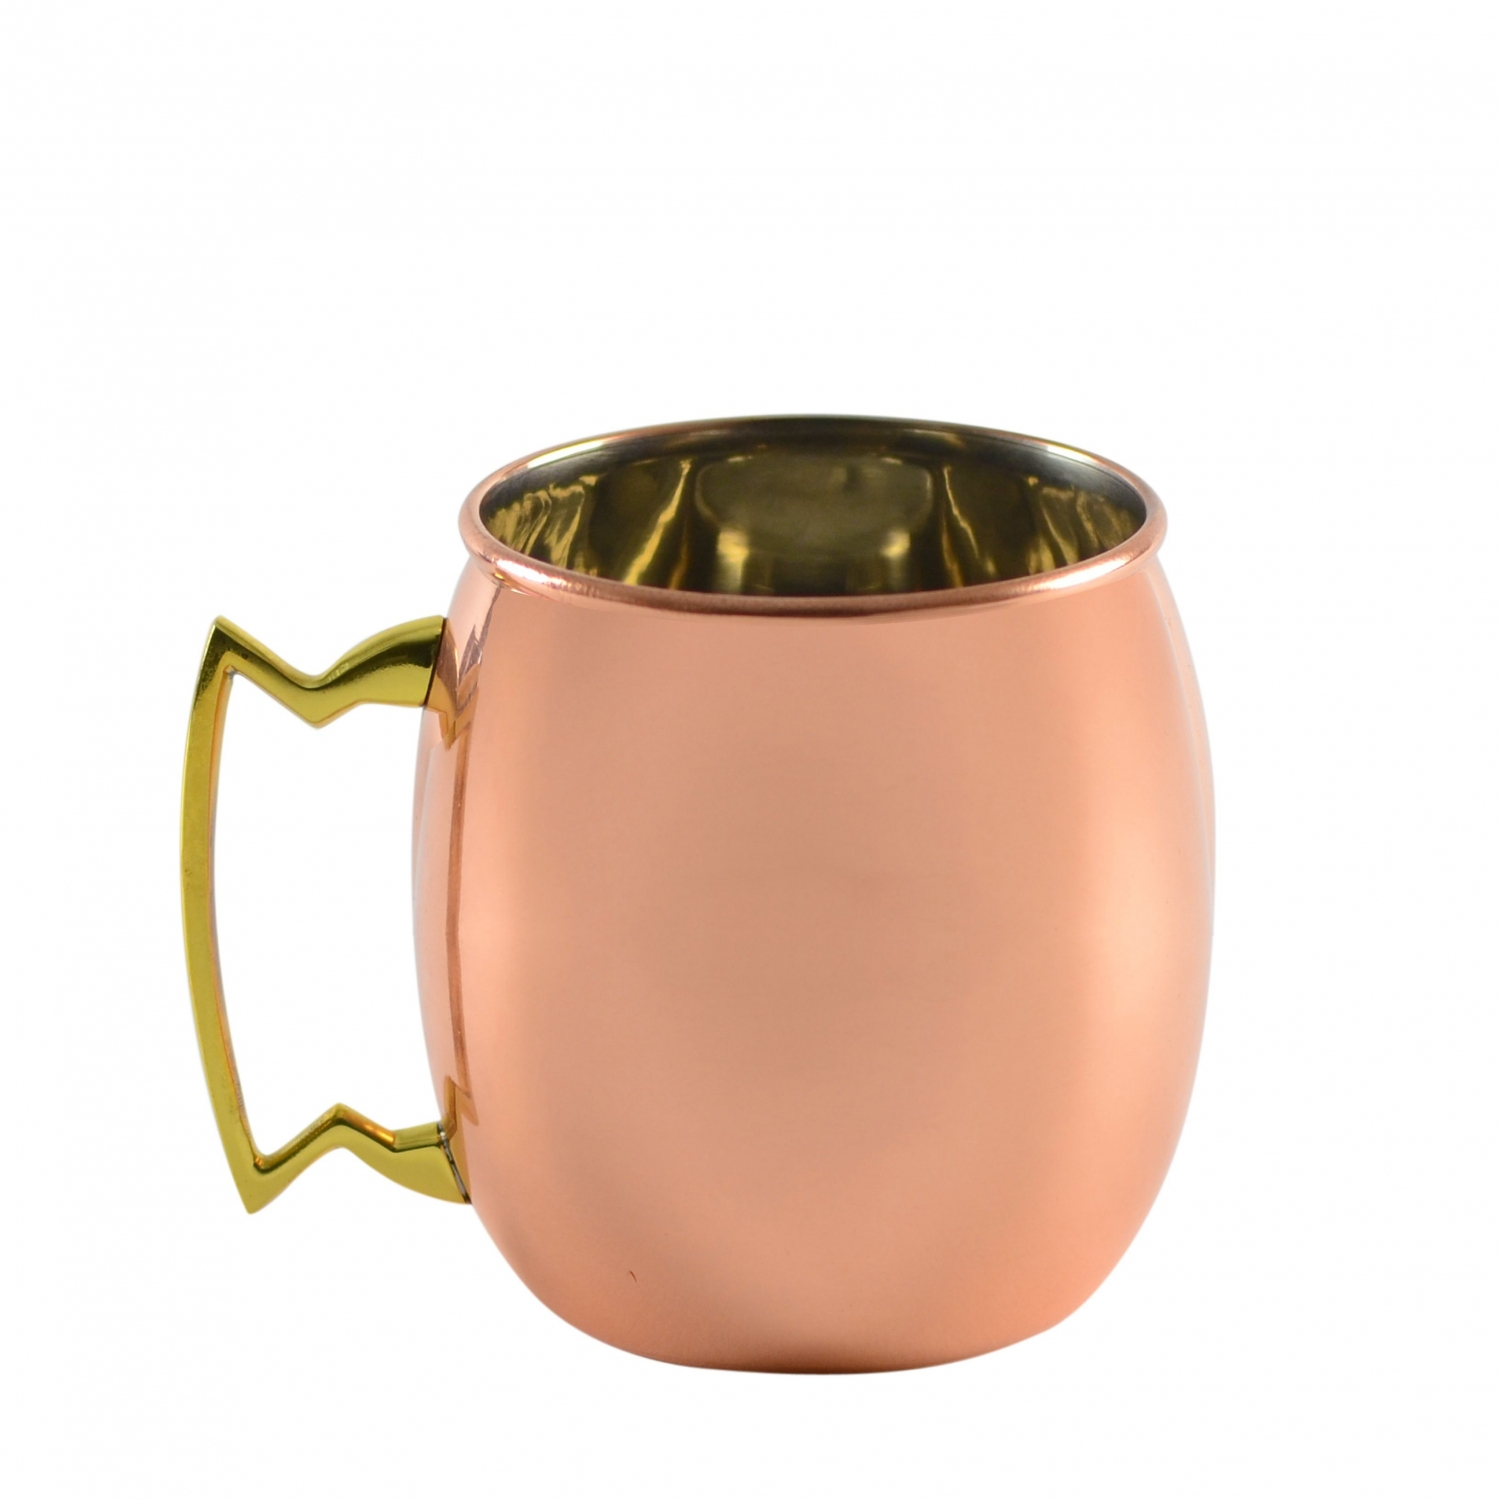 10 Strawberry Street COP-MUGCLSC 17 oz., Classic Copper Mug - 32 pcs